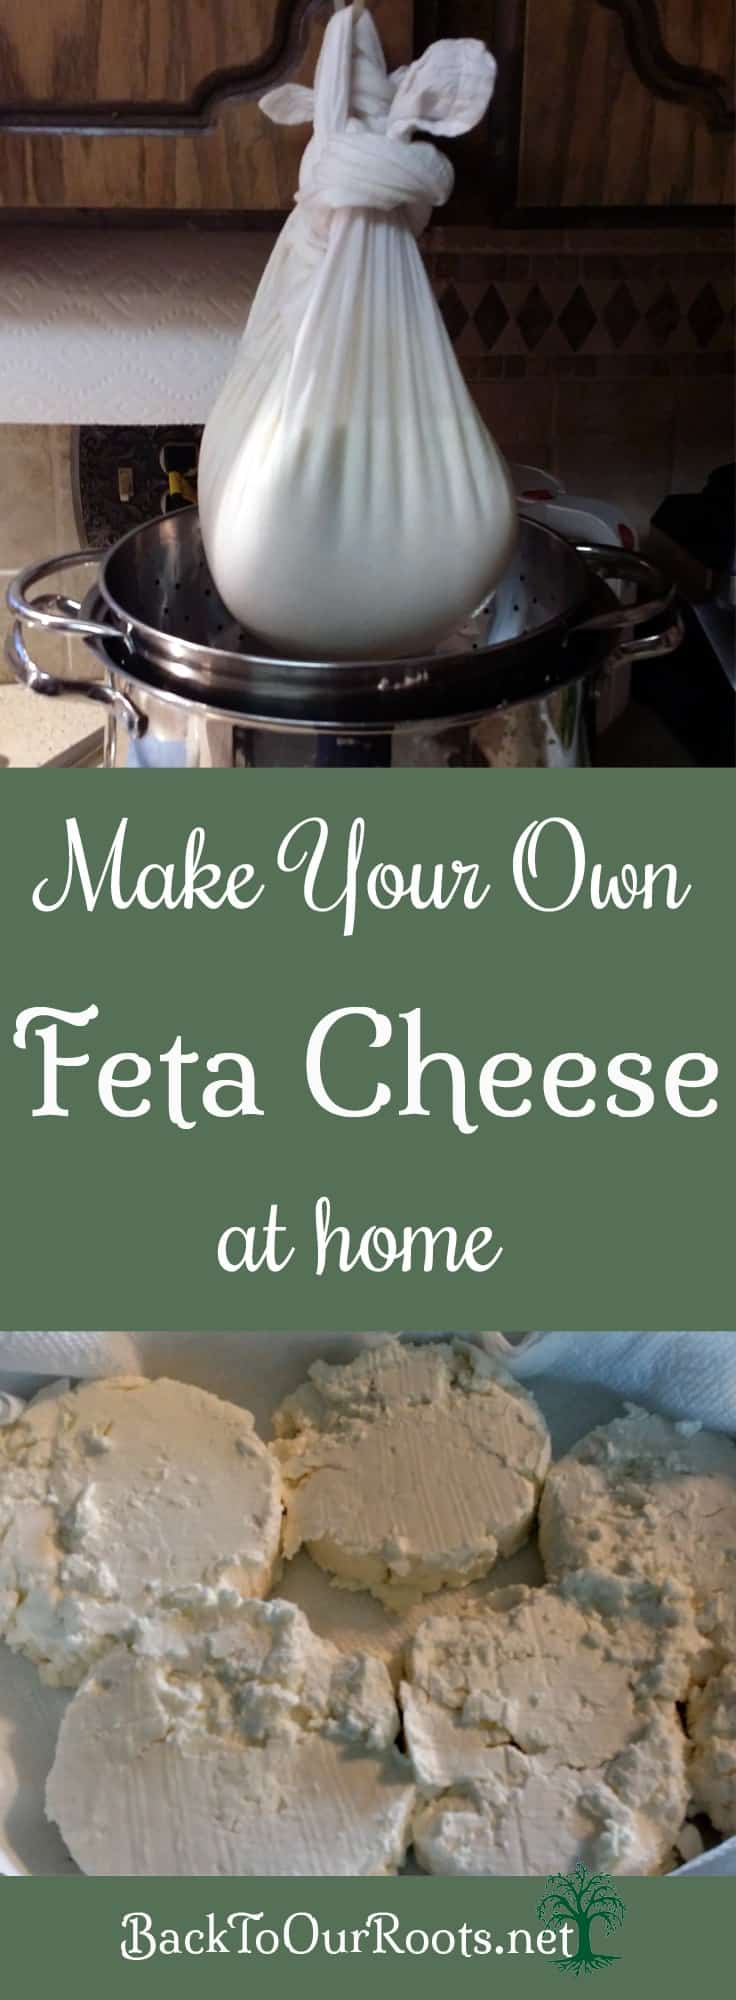 How to Make Feta Cheese at Home